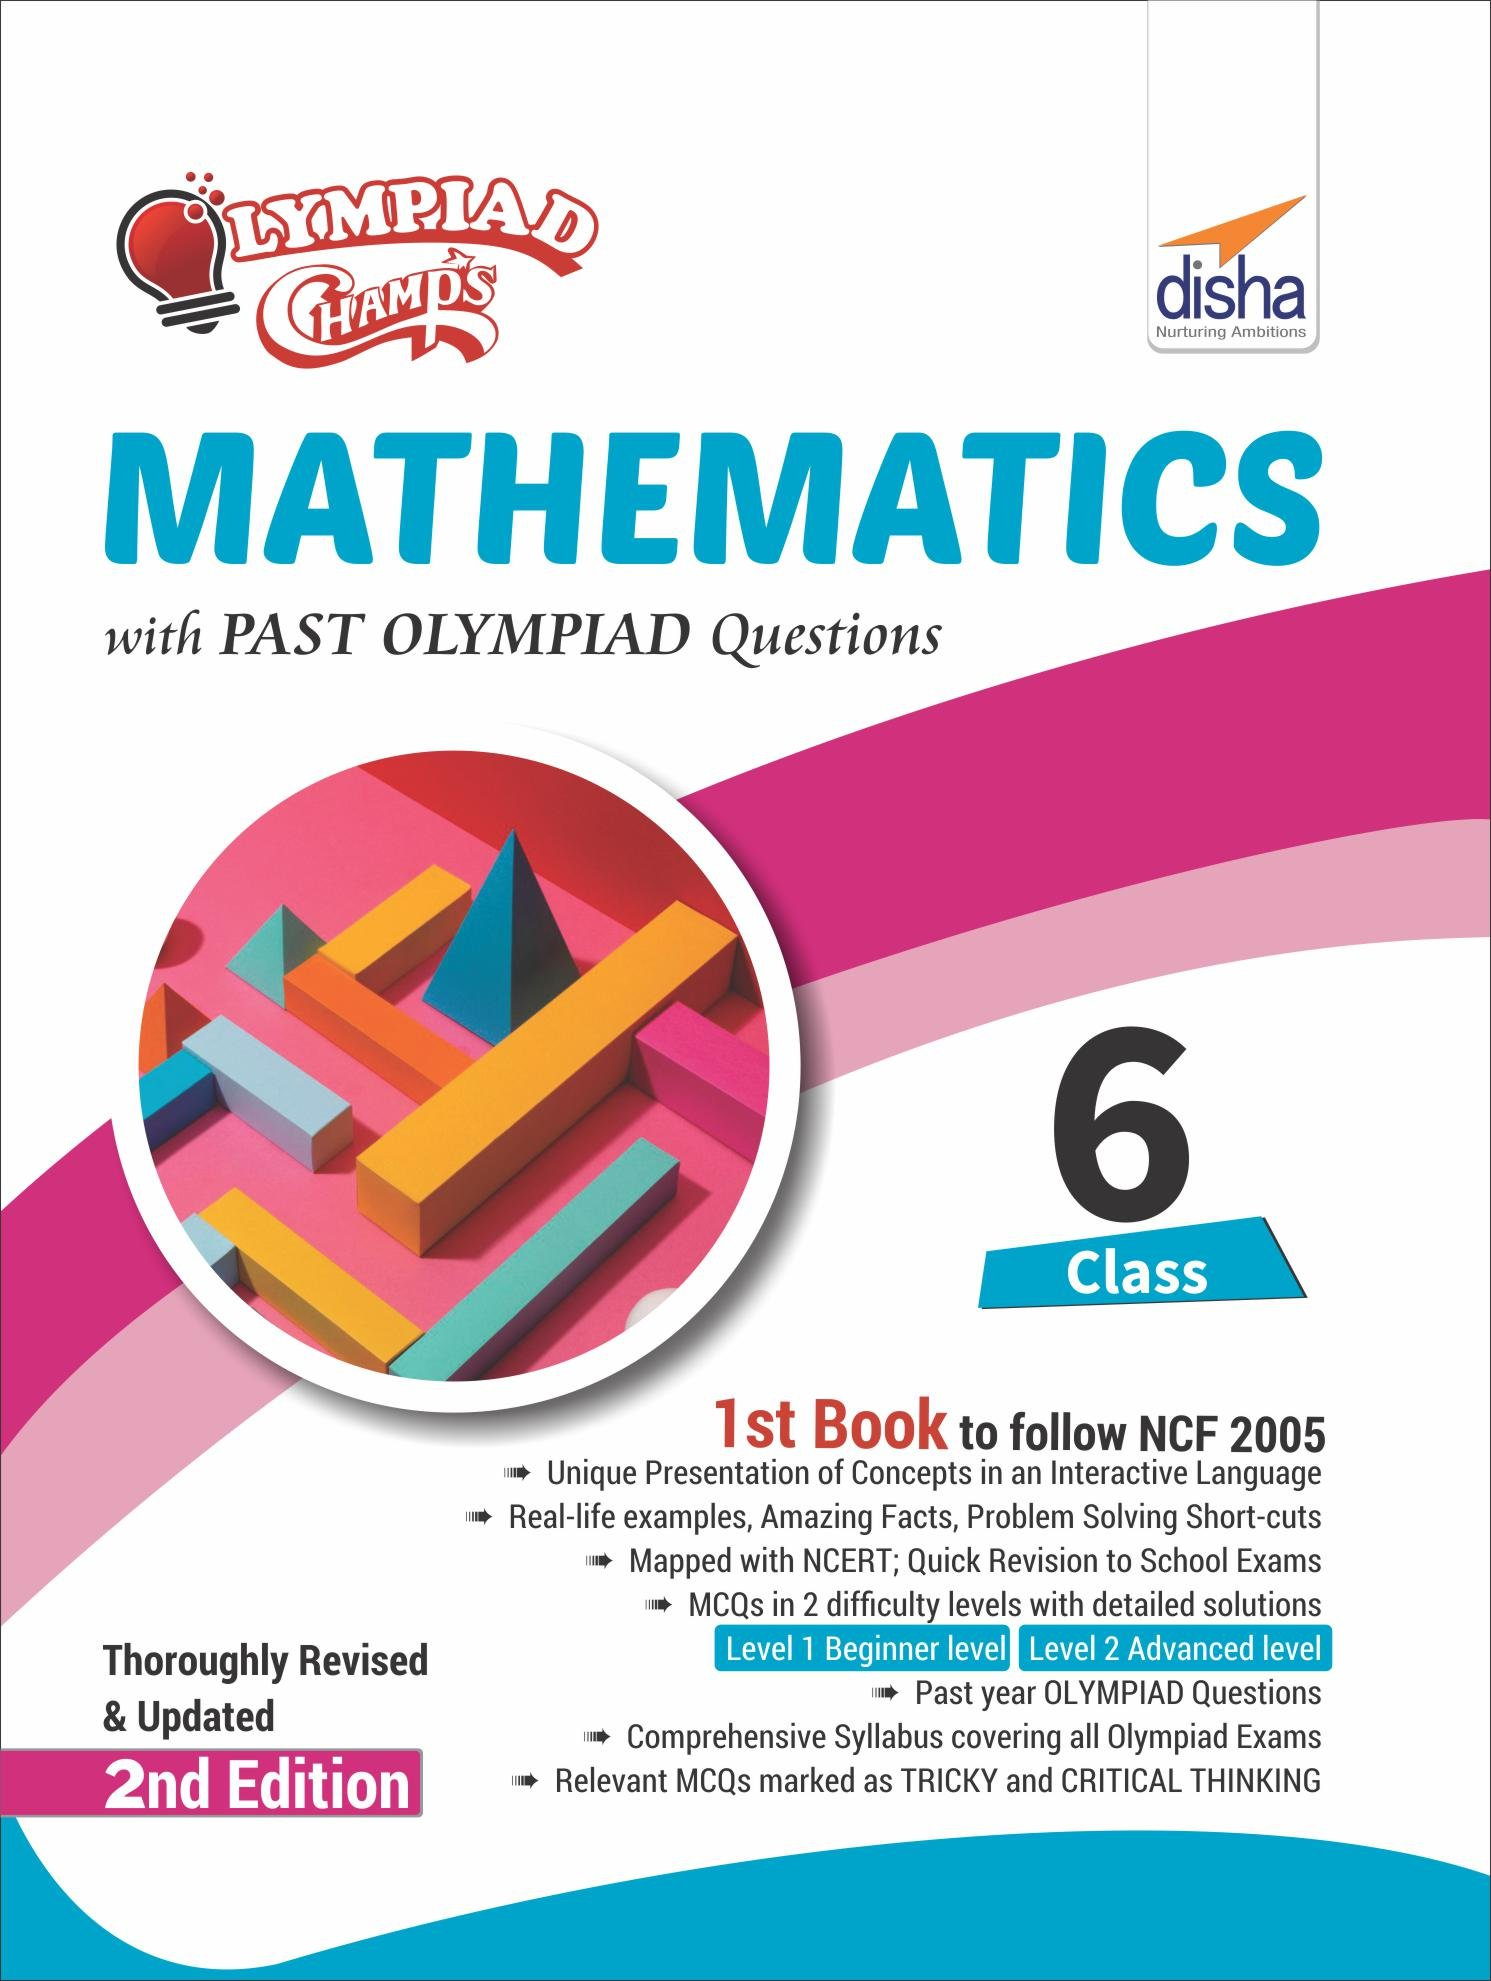 Buy Olympiad Champs Mathematics Class 6 with Past Olympiad